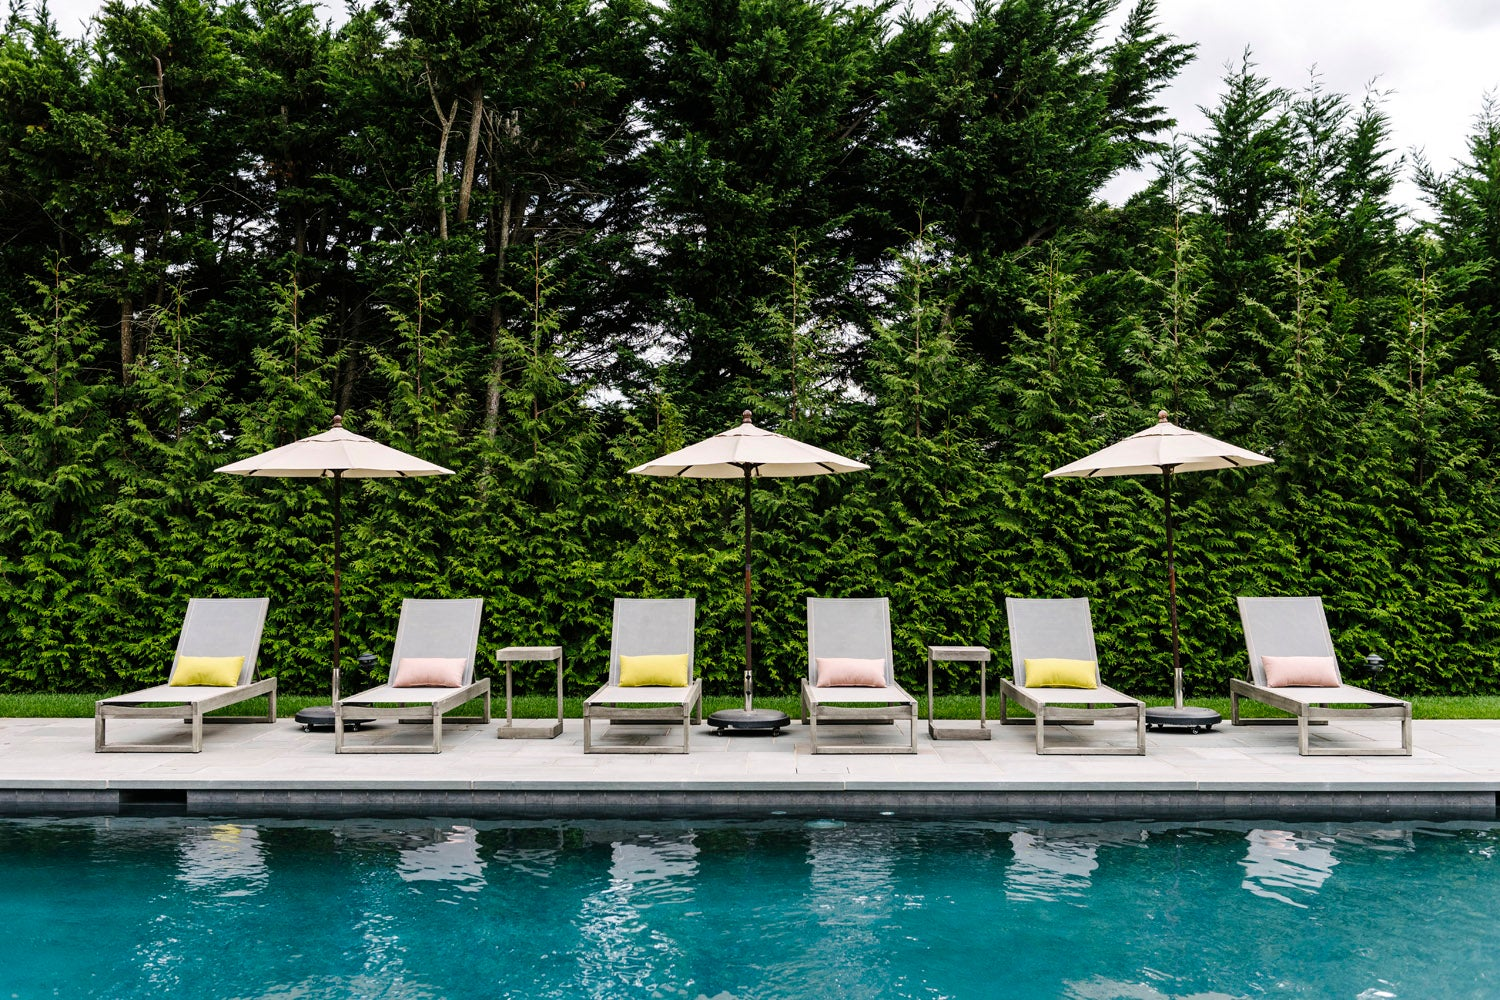 pool with chairs and umbrellas